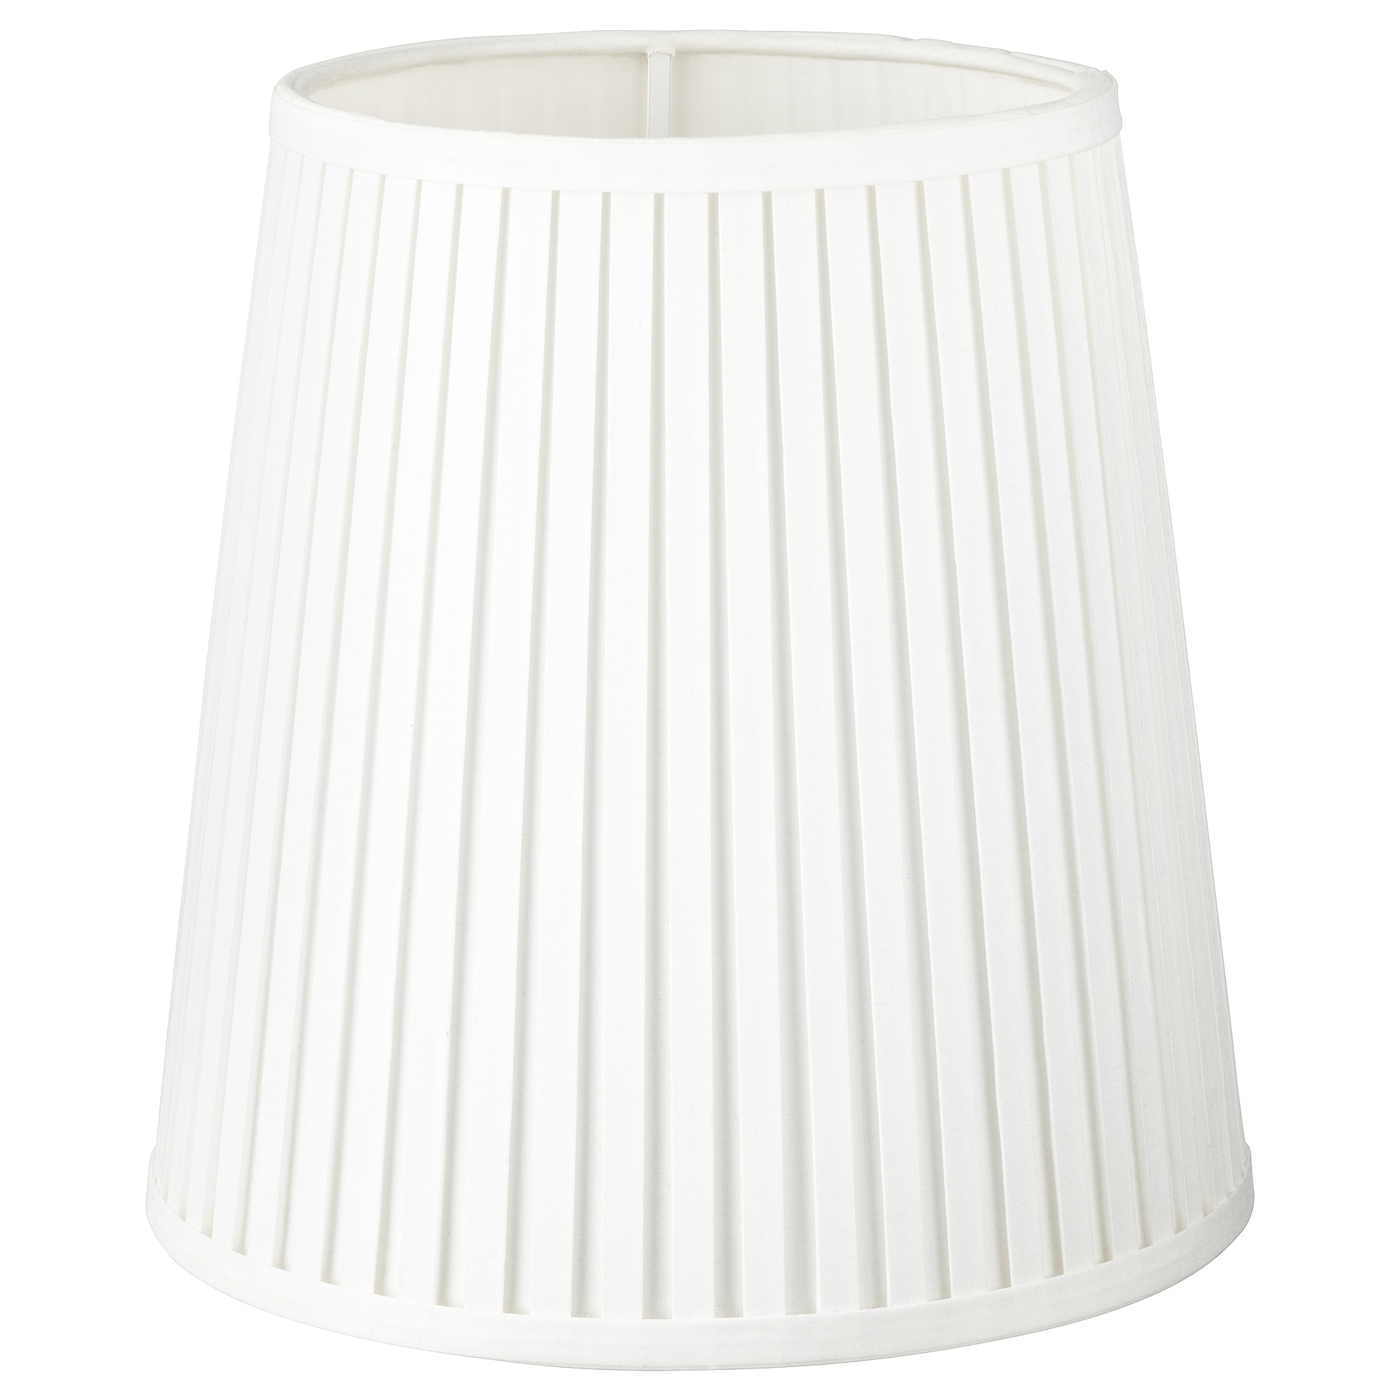 IKEA EKÅS lamp shade